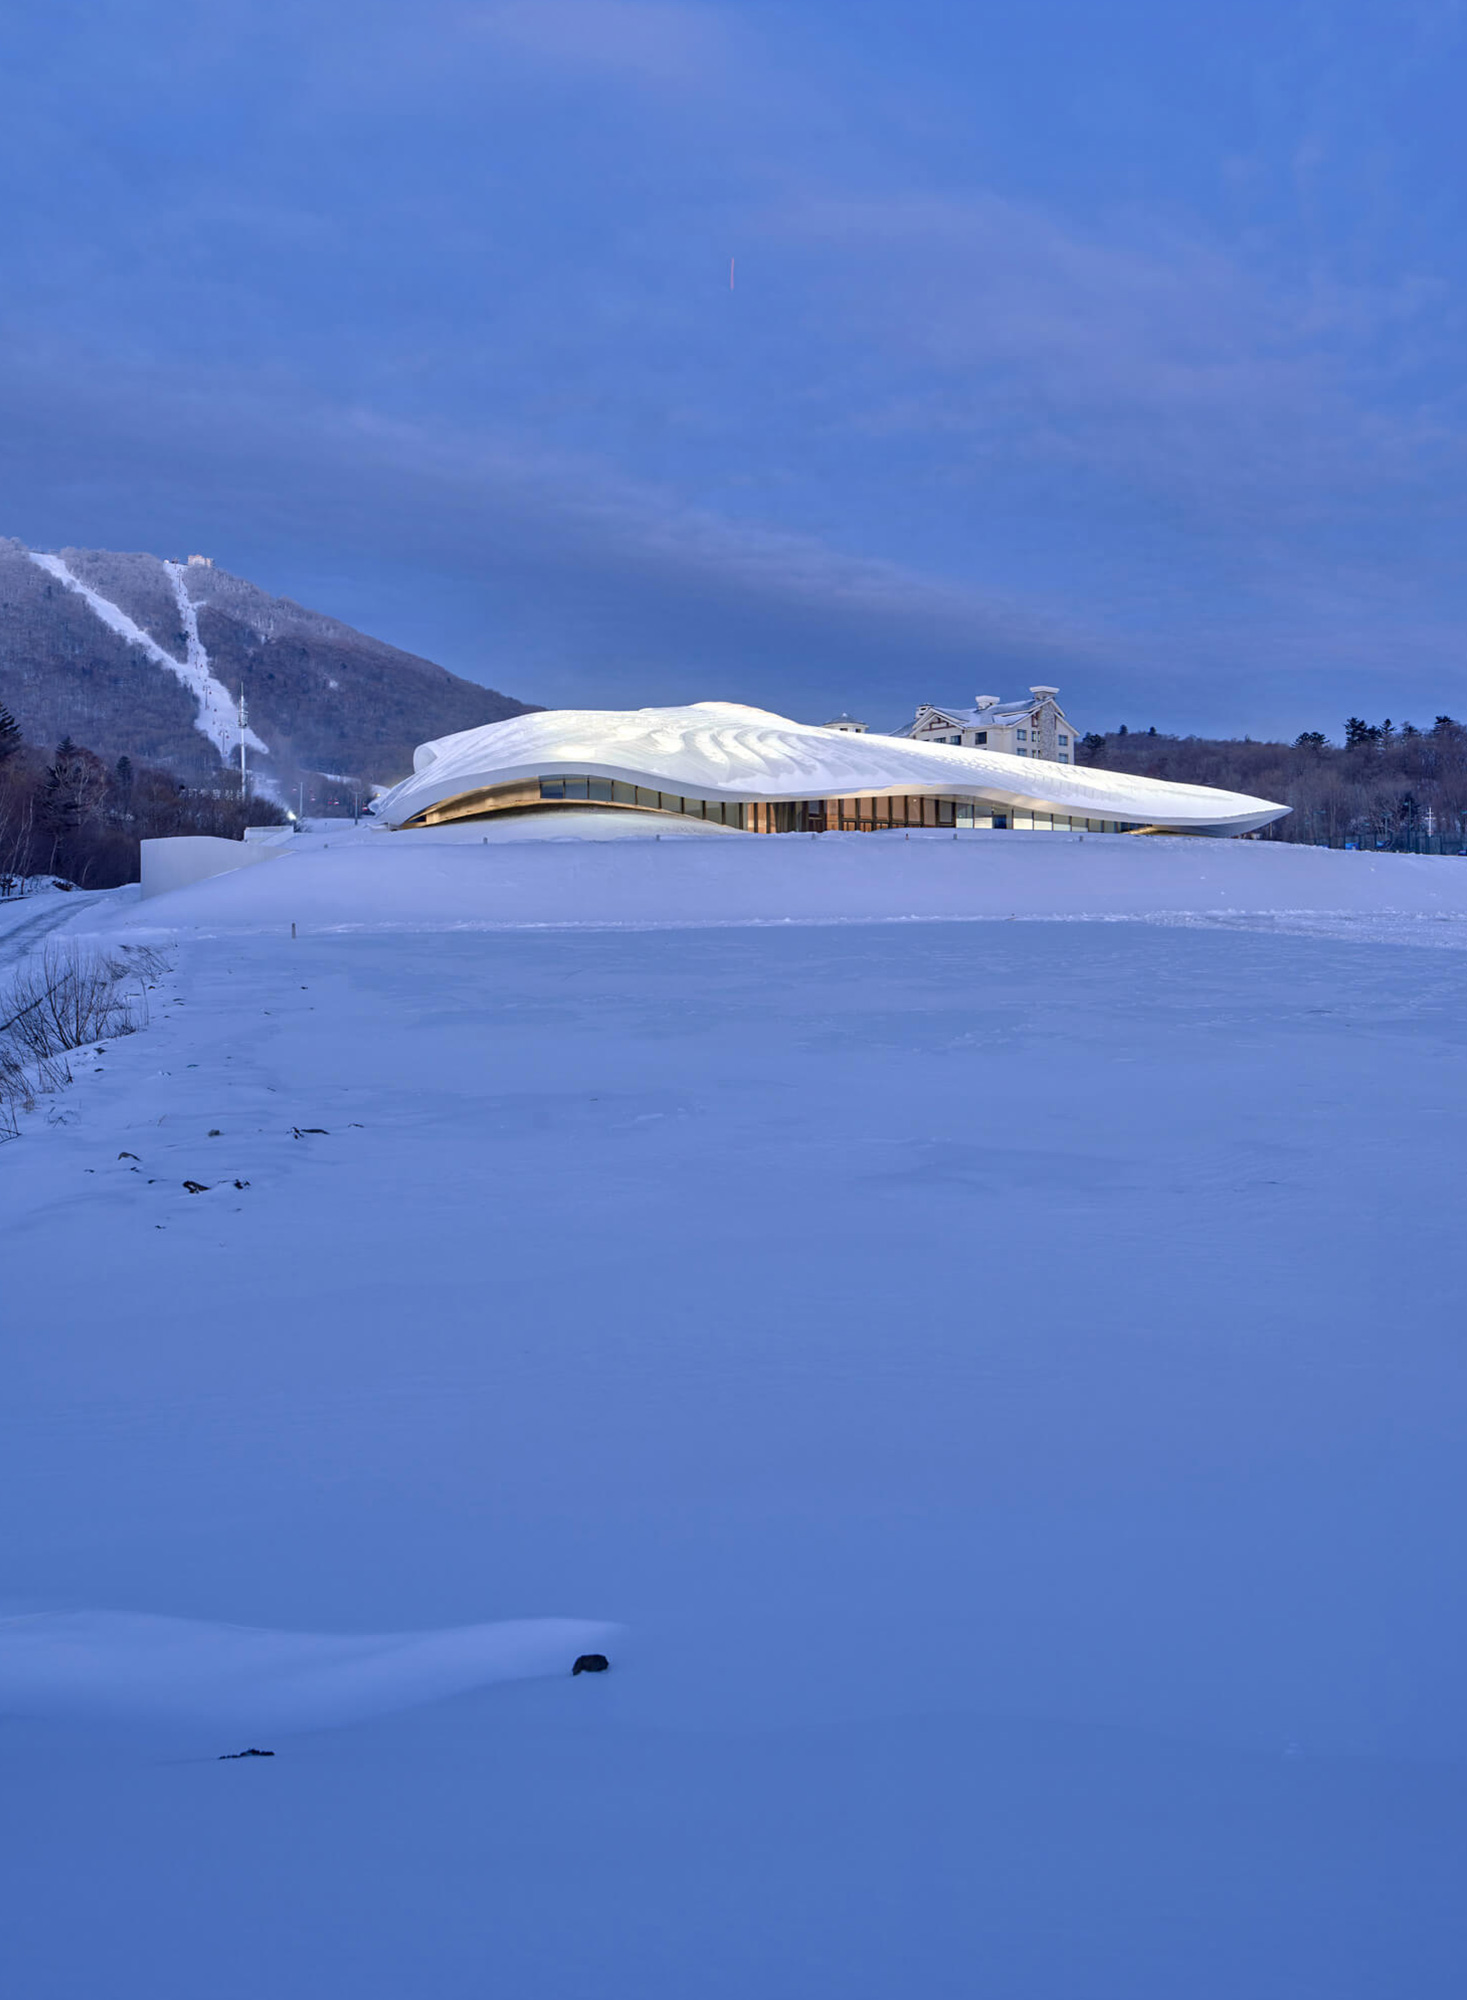 The white, flowy form mirrors and blends into the snowy landscape | Yabuli Entrepreneurs' Congress Center designed by MAD Architects | STIRworld